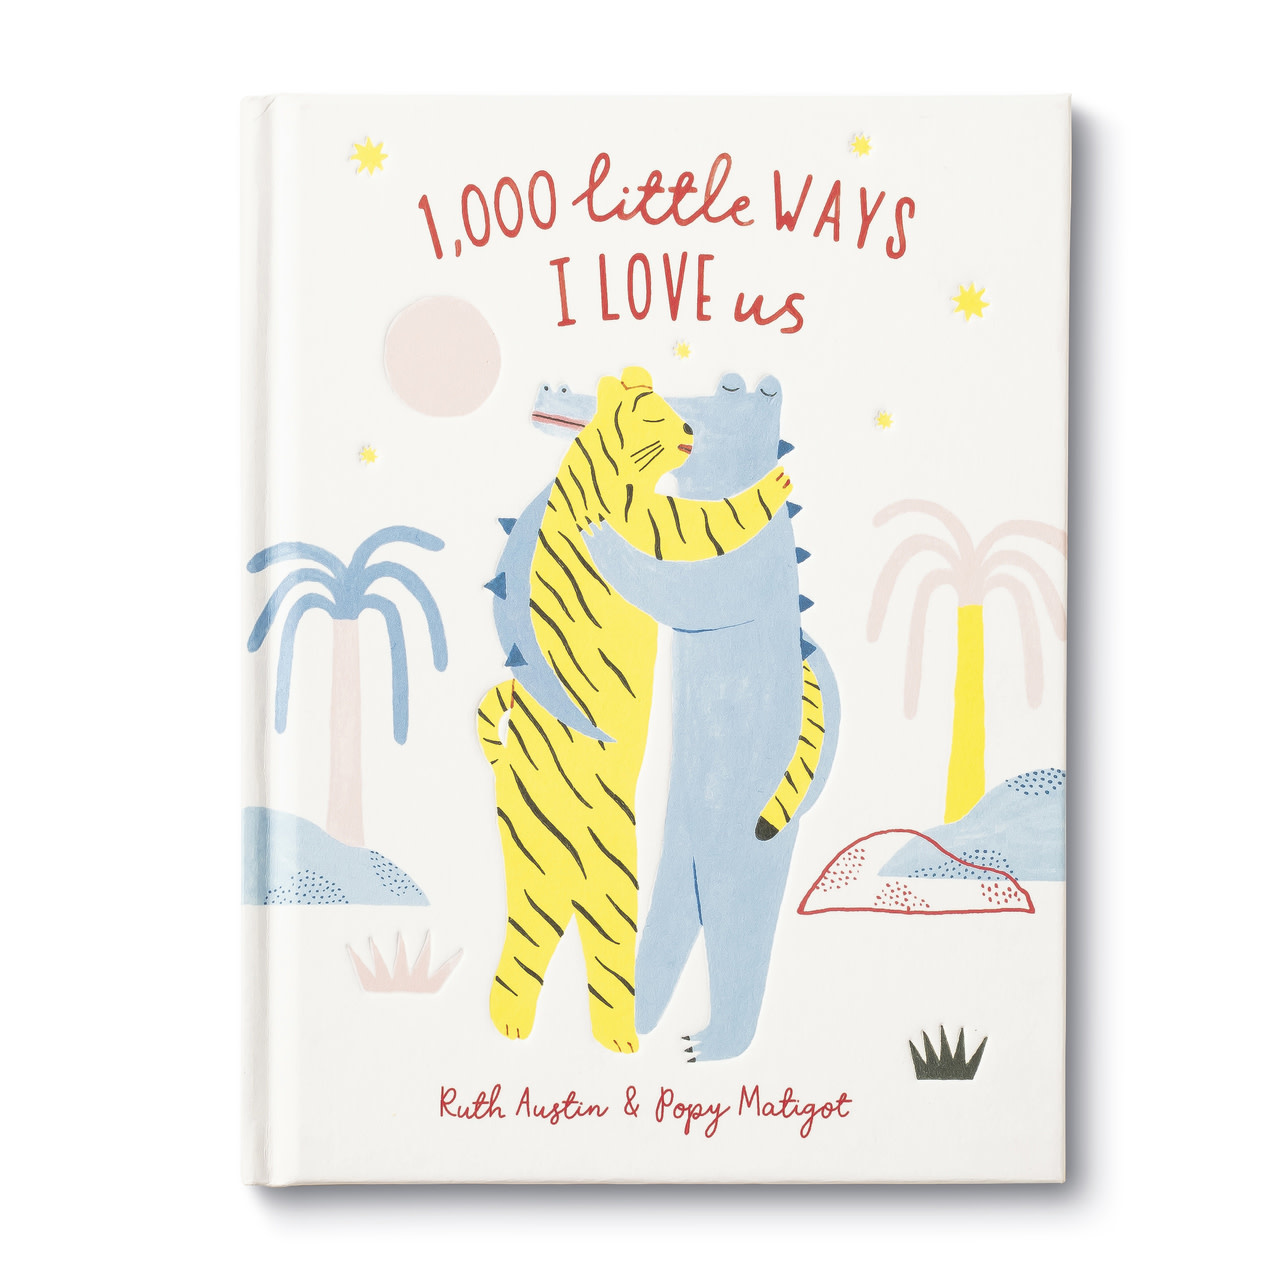 Compendium 1,000 Little Ways I Love Us Book